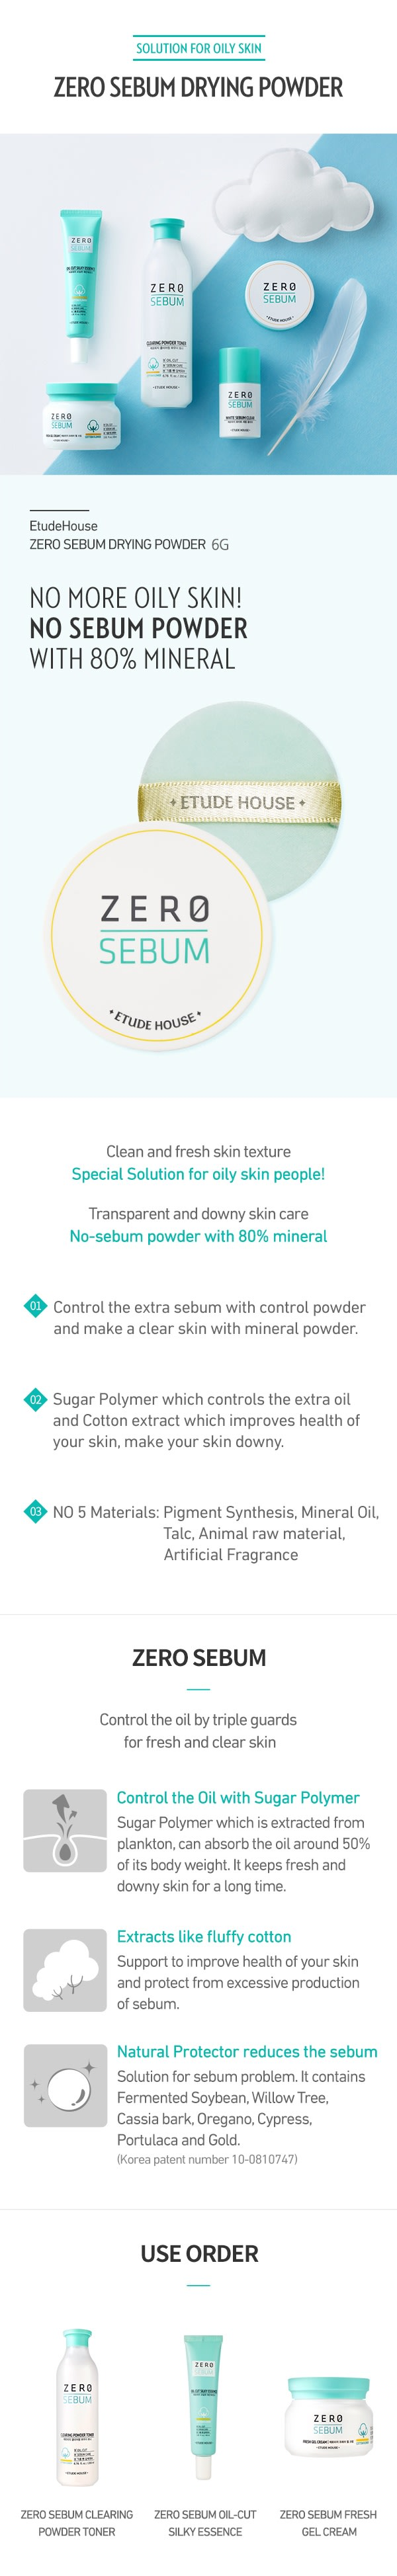 Zero Sebum Drying Powder 6g How to use Description Ingredients